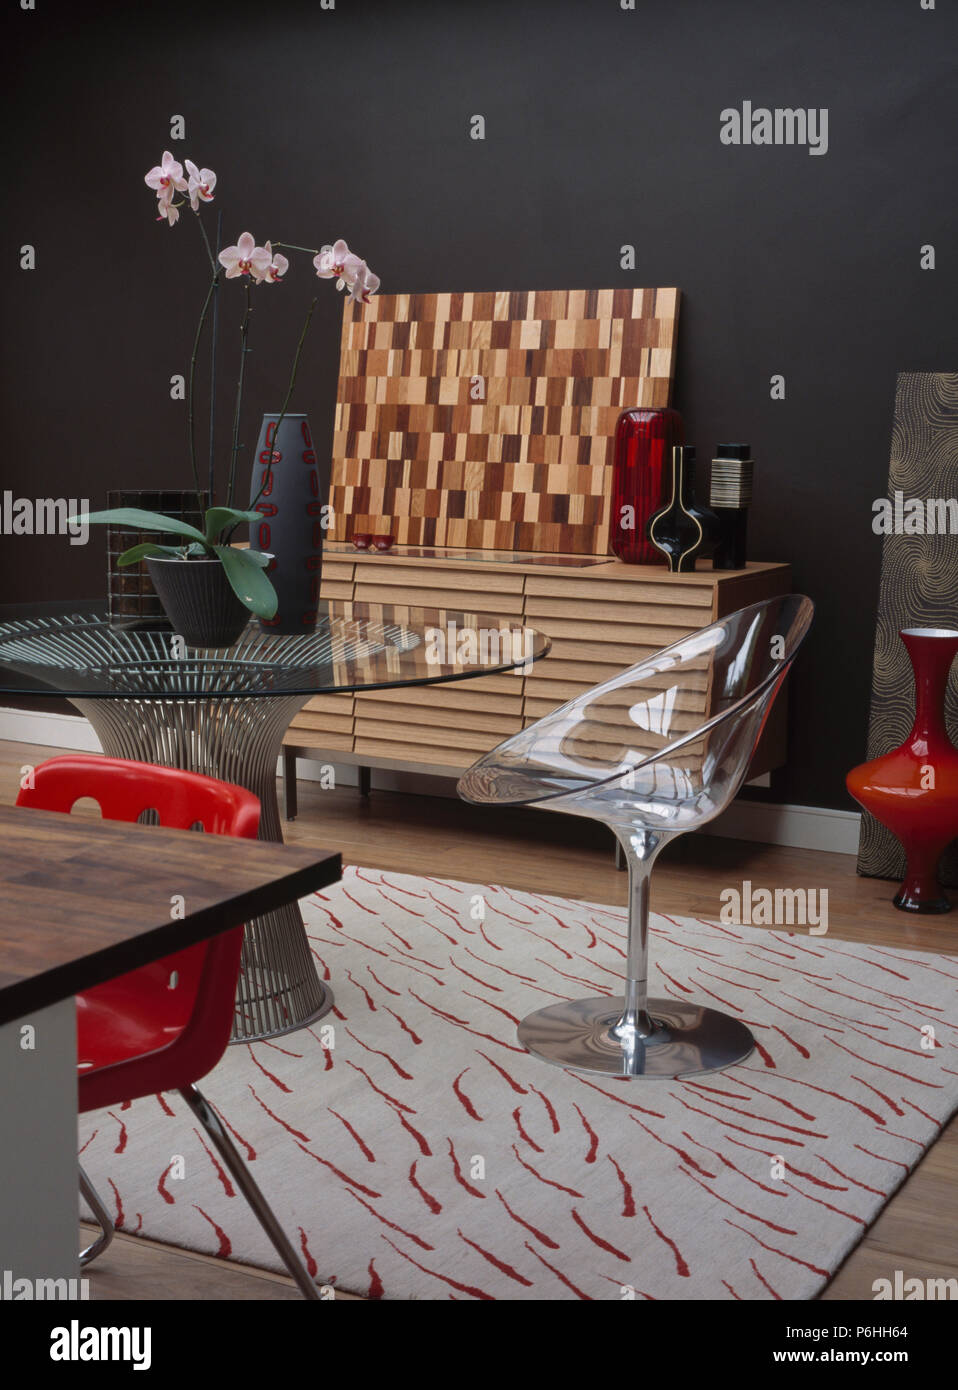 Acrylic pedestal chair and glass-topped circular metal table in modern living room with patterned white rug Stock Photo